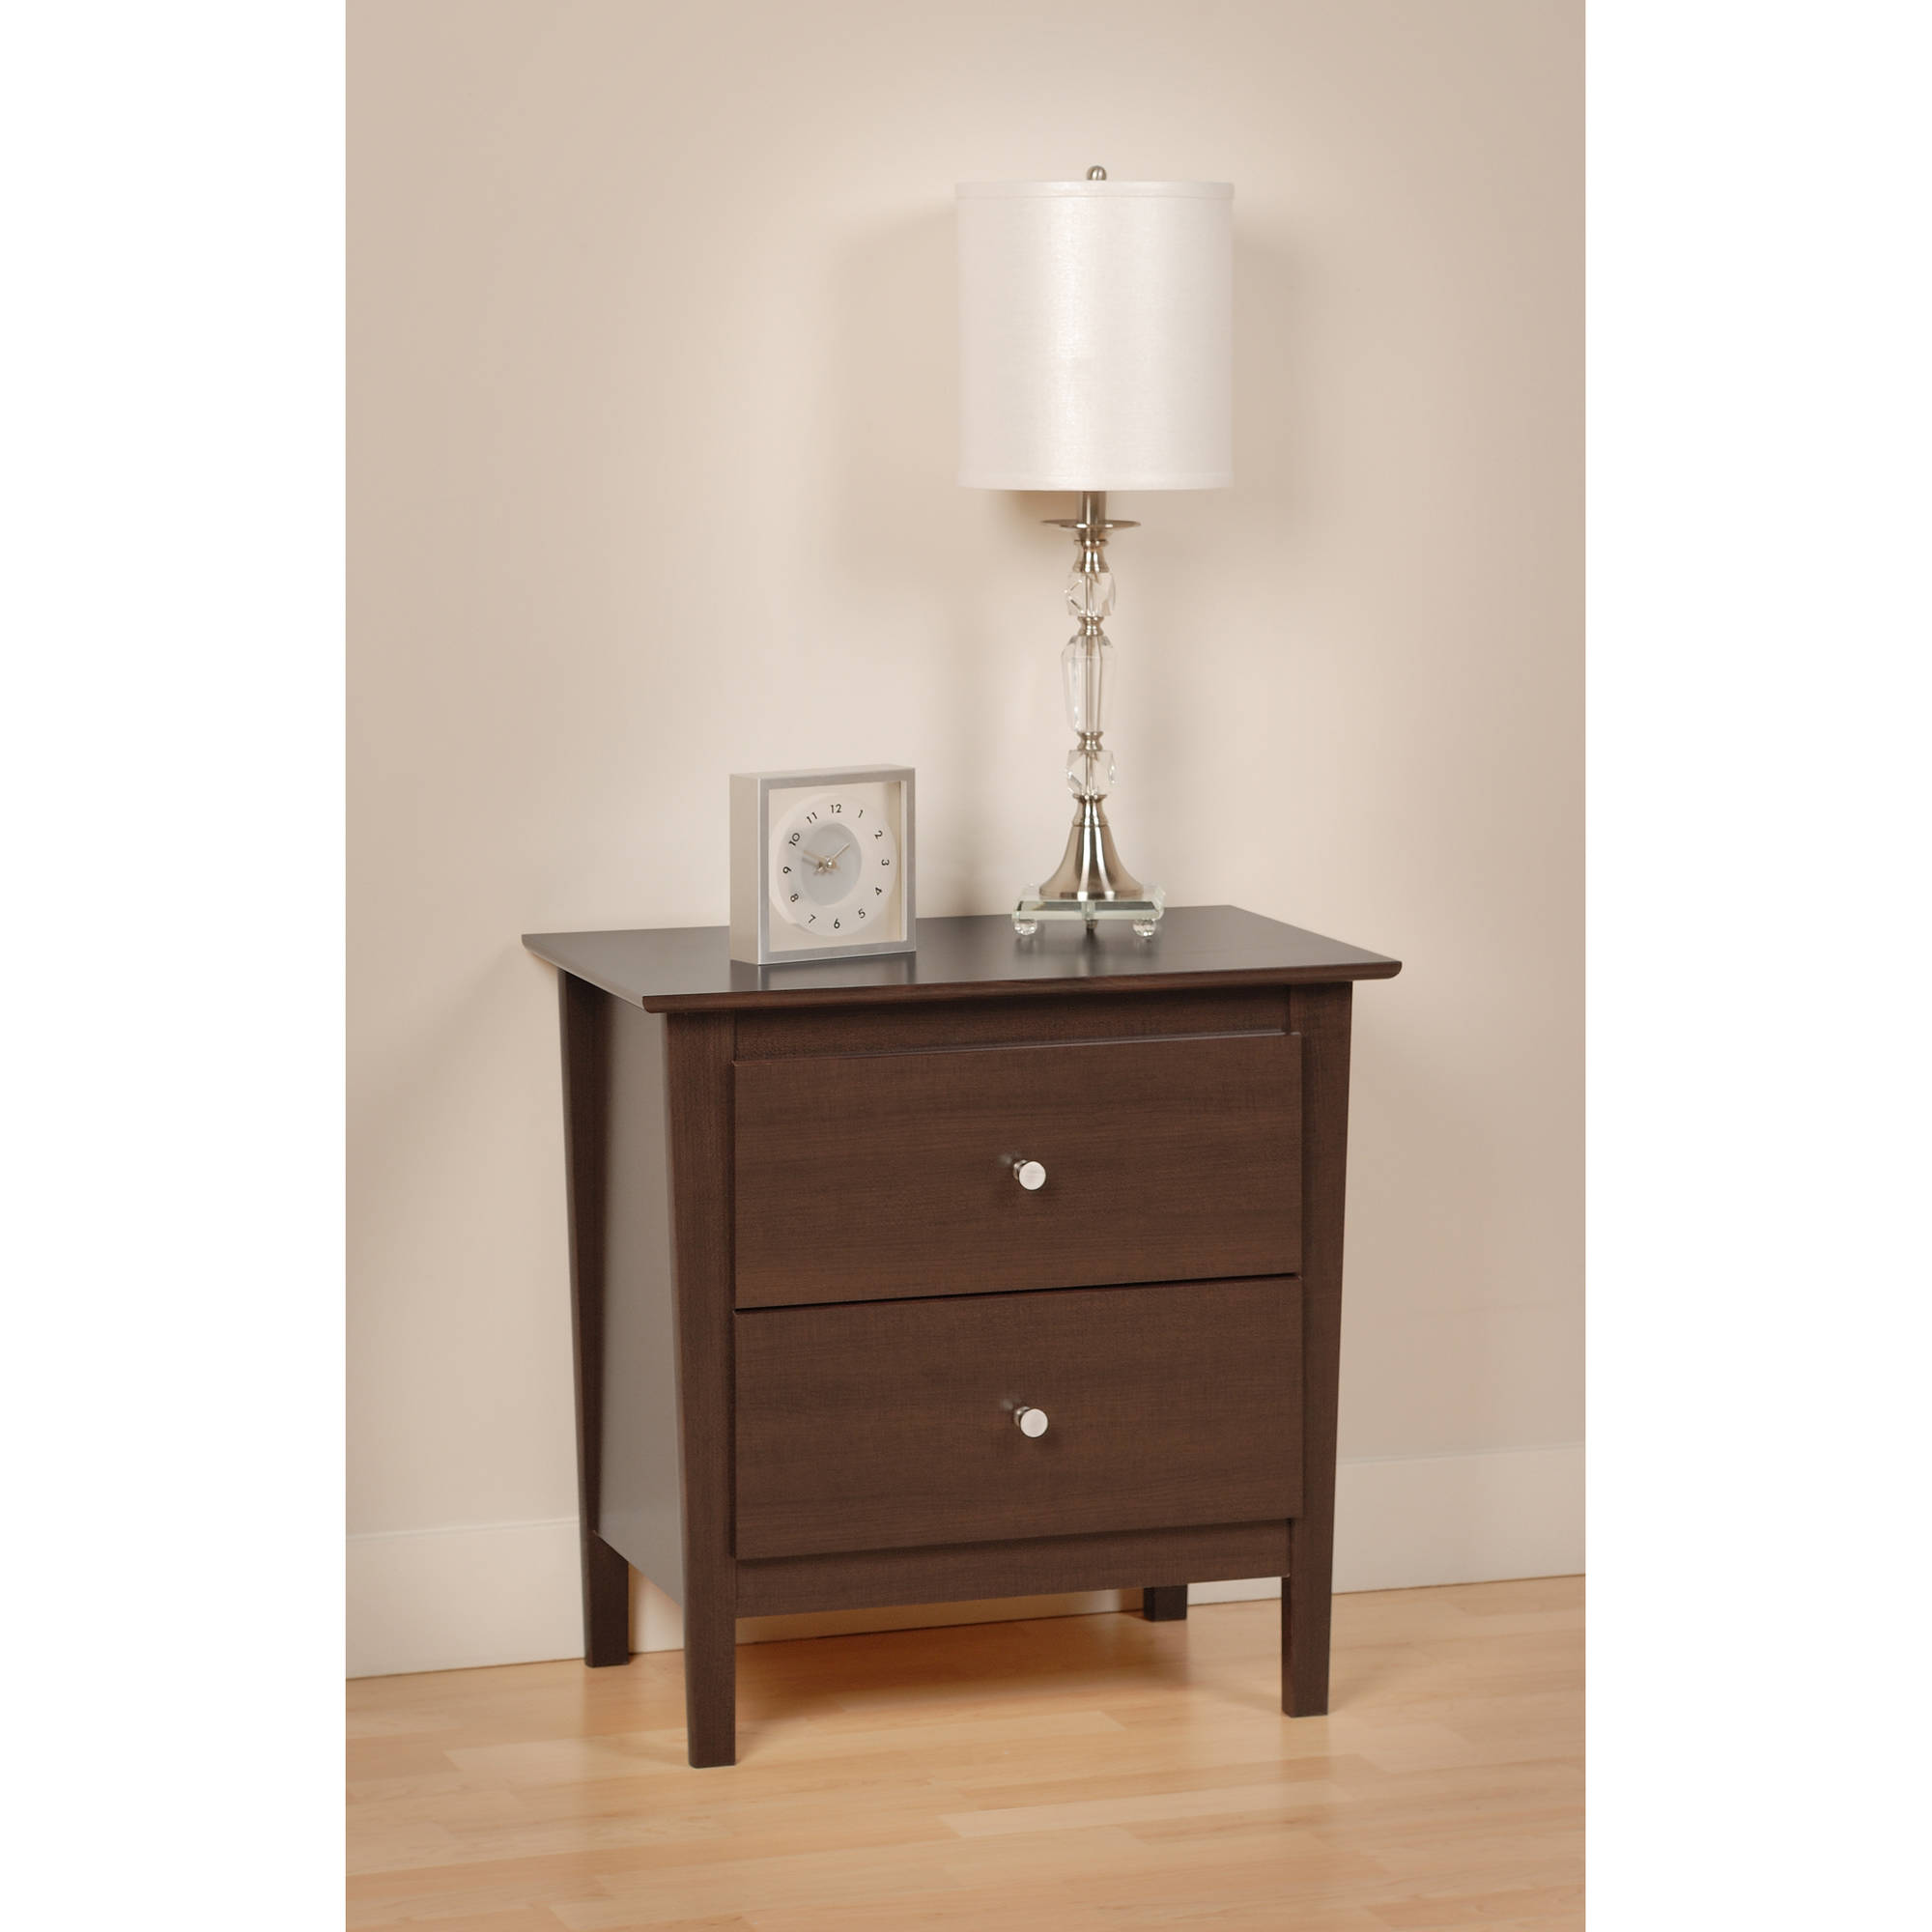 Prepac Berkshire 2 Drawer Nightstand Espresso by Prepac